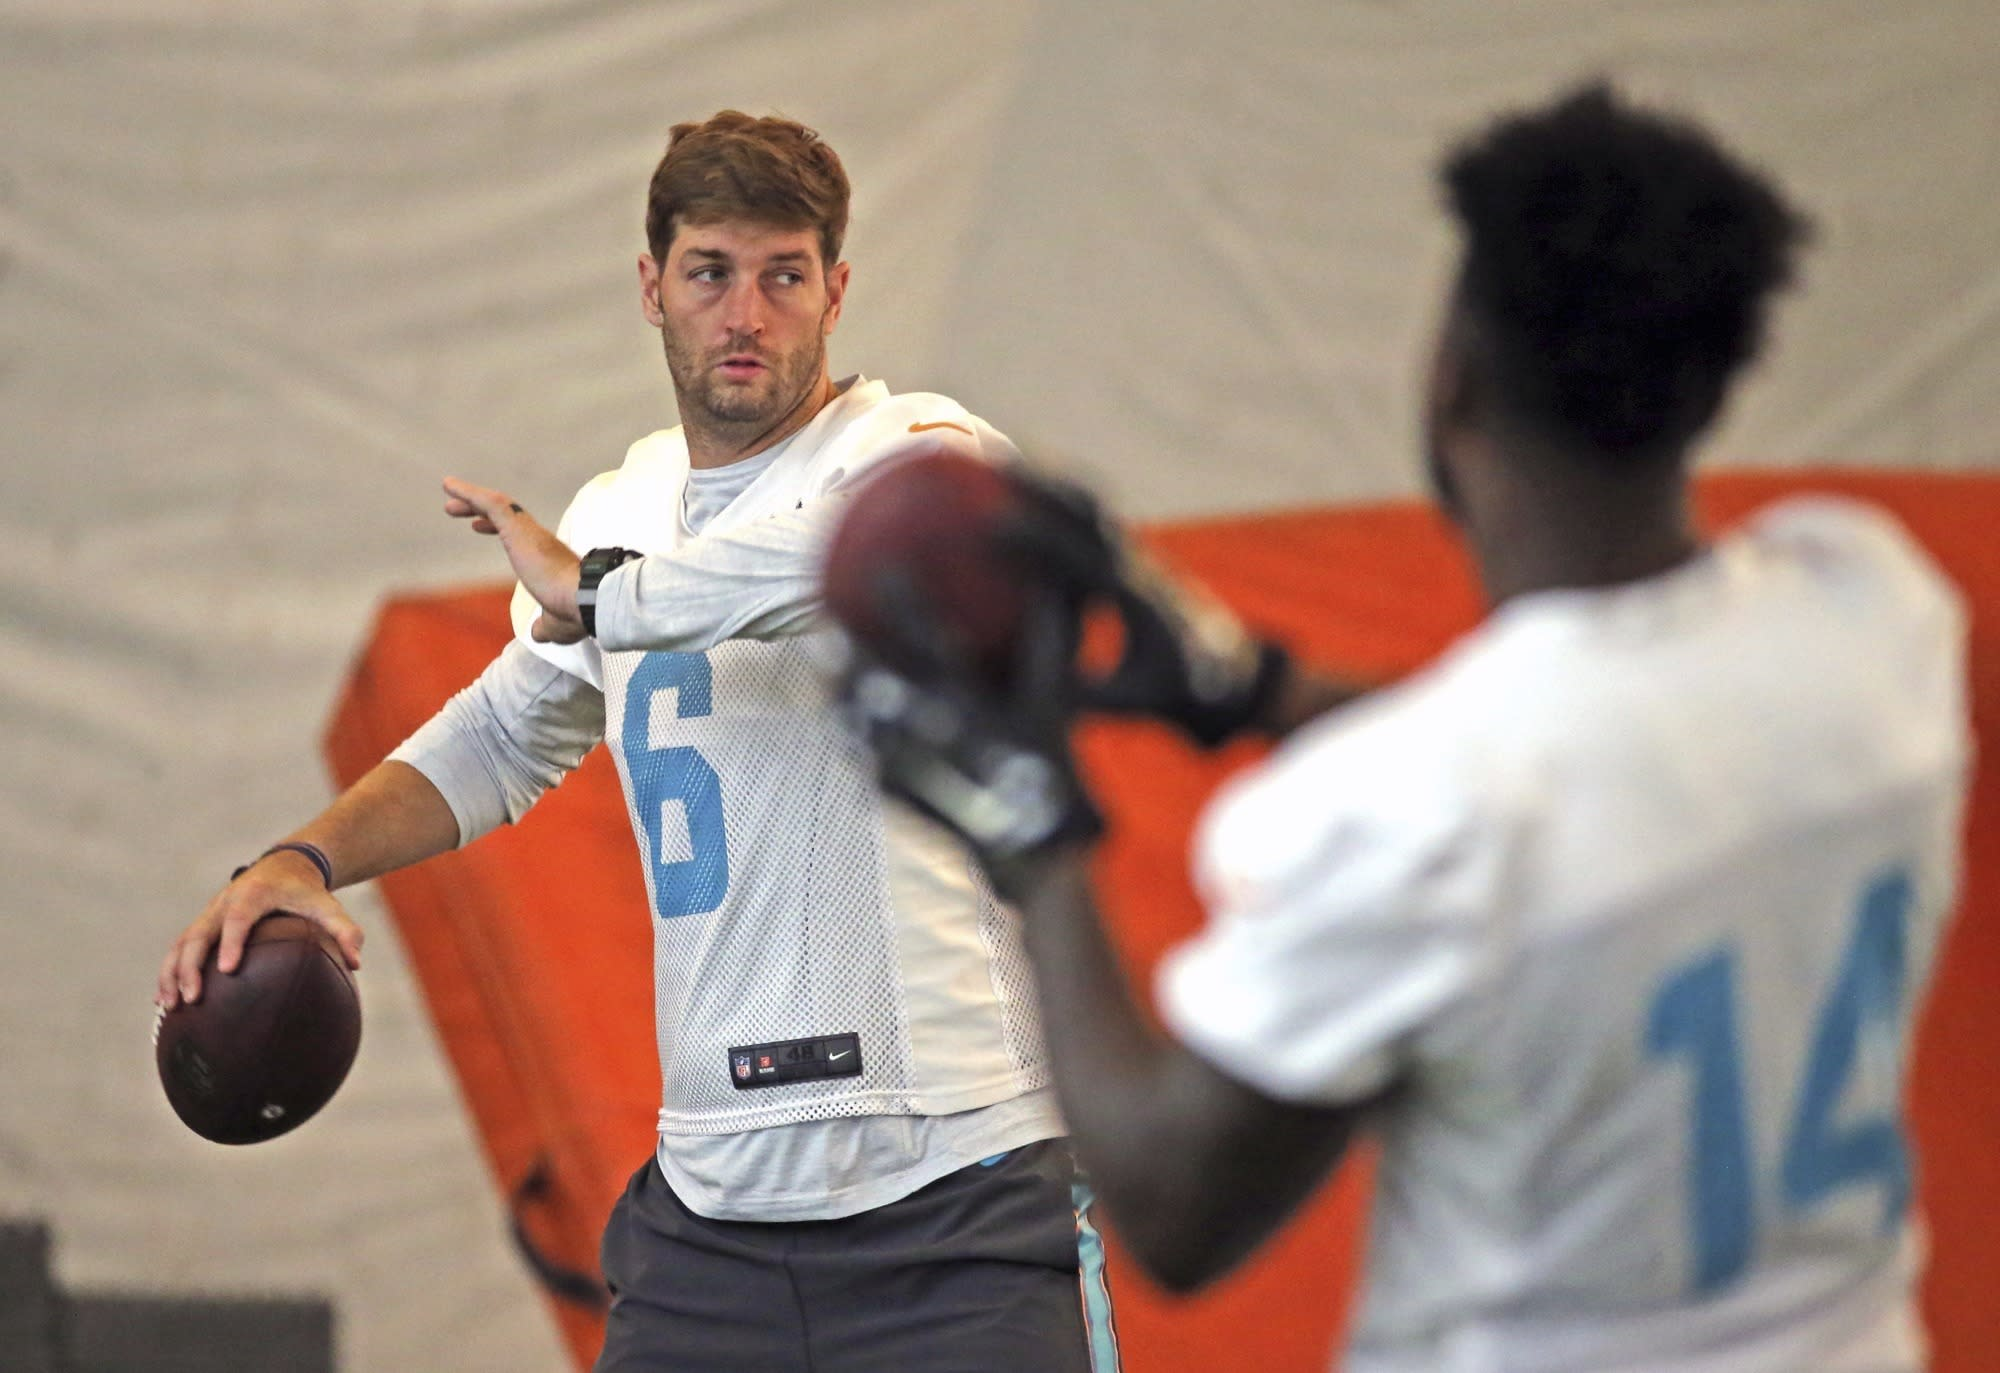 Who's ready for the return of Jay Cutler to NFL action?